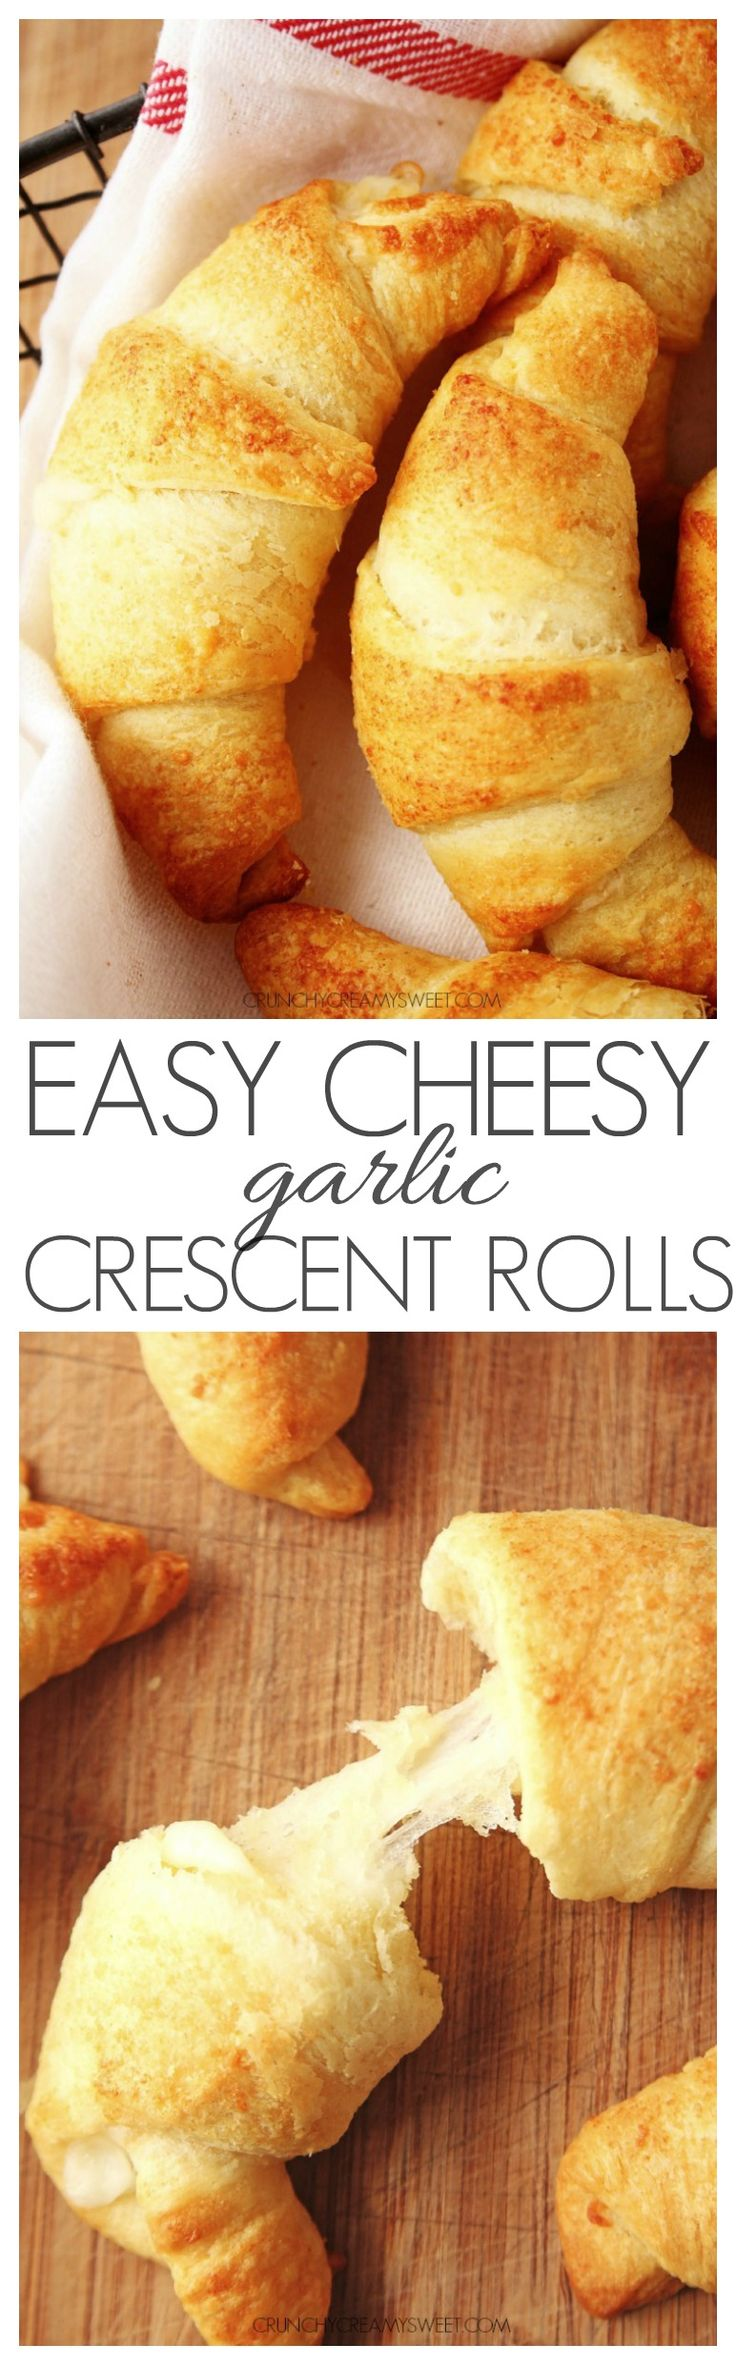 Easy Cheesy Garlic Crescent Rolls - jazz up crescent rolls from a tube with a gooey cheesy filling and a garlic Parmesan butter. So good!